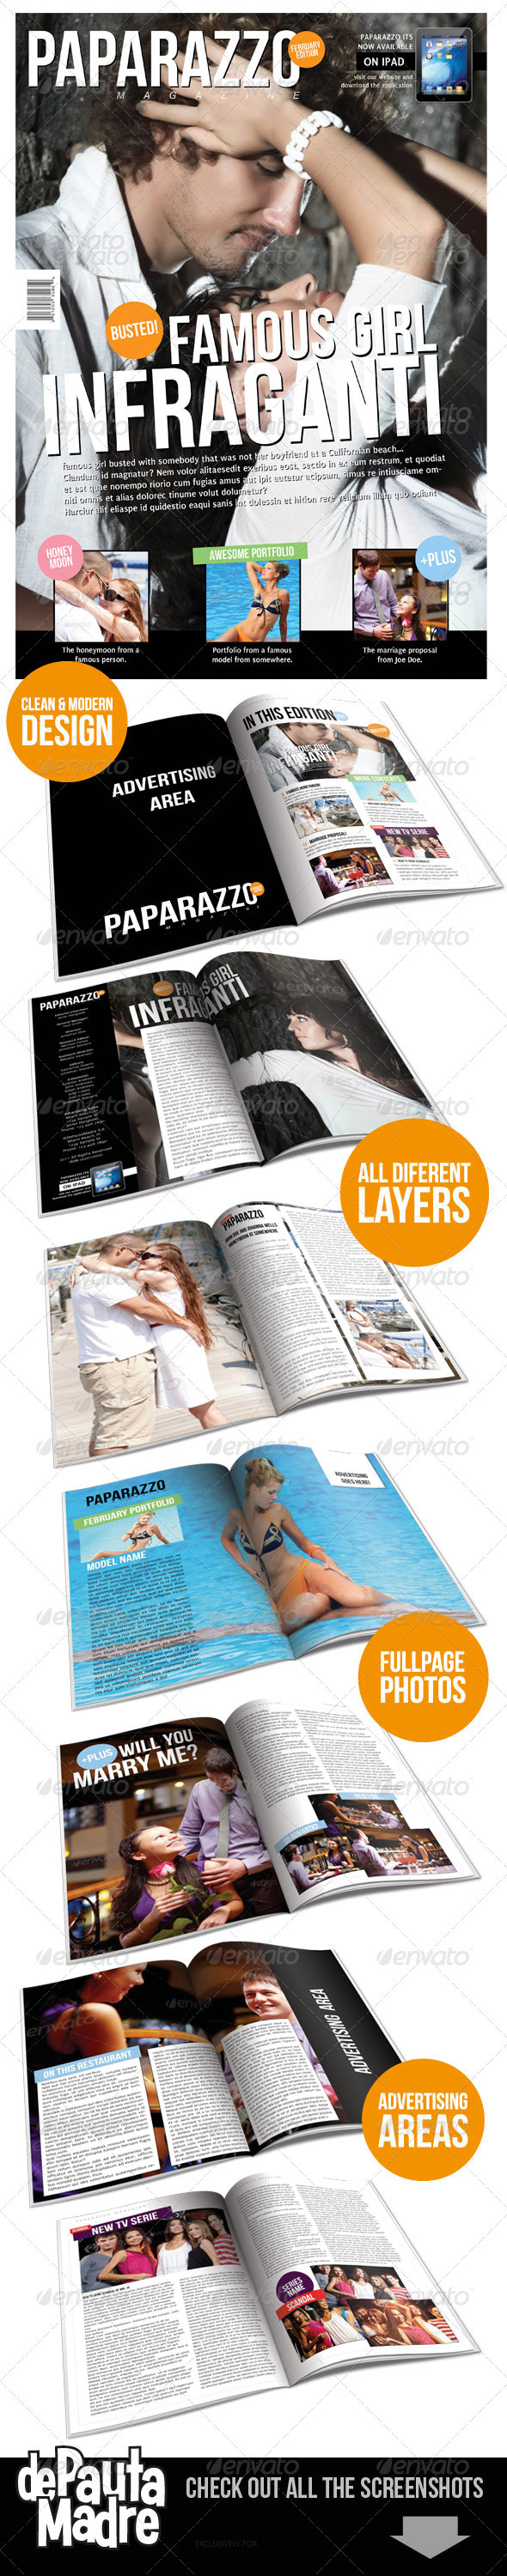 Paparazzo Magazine Indesign Template - Magazines Print Templates